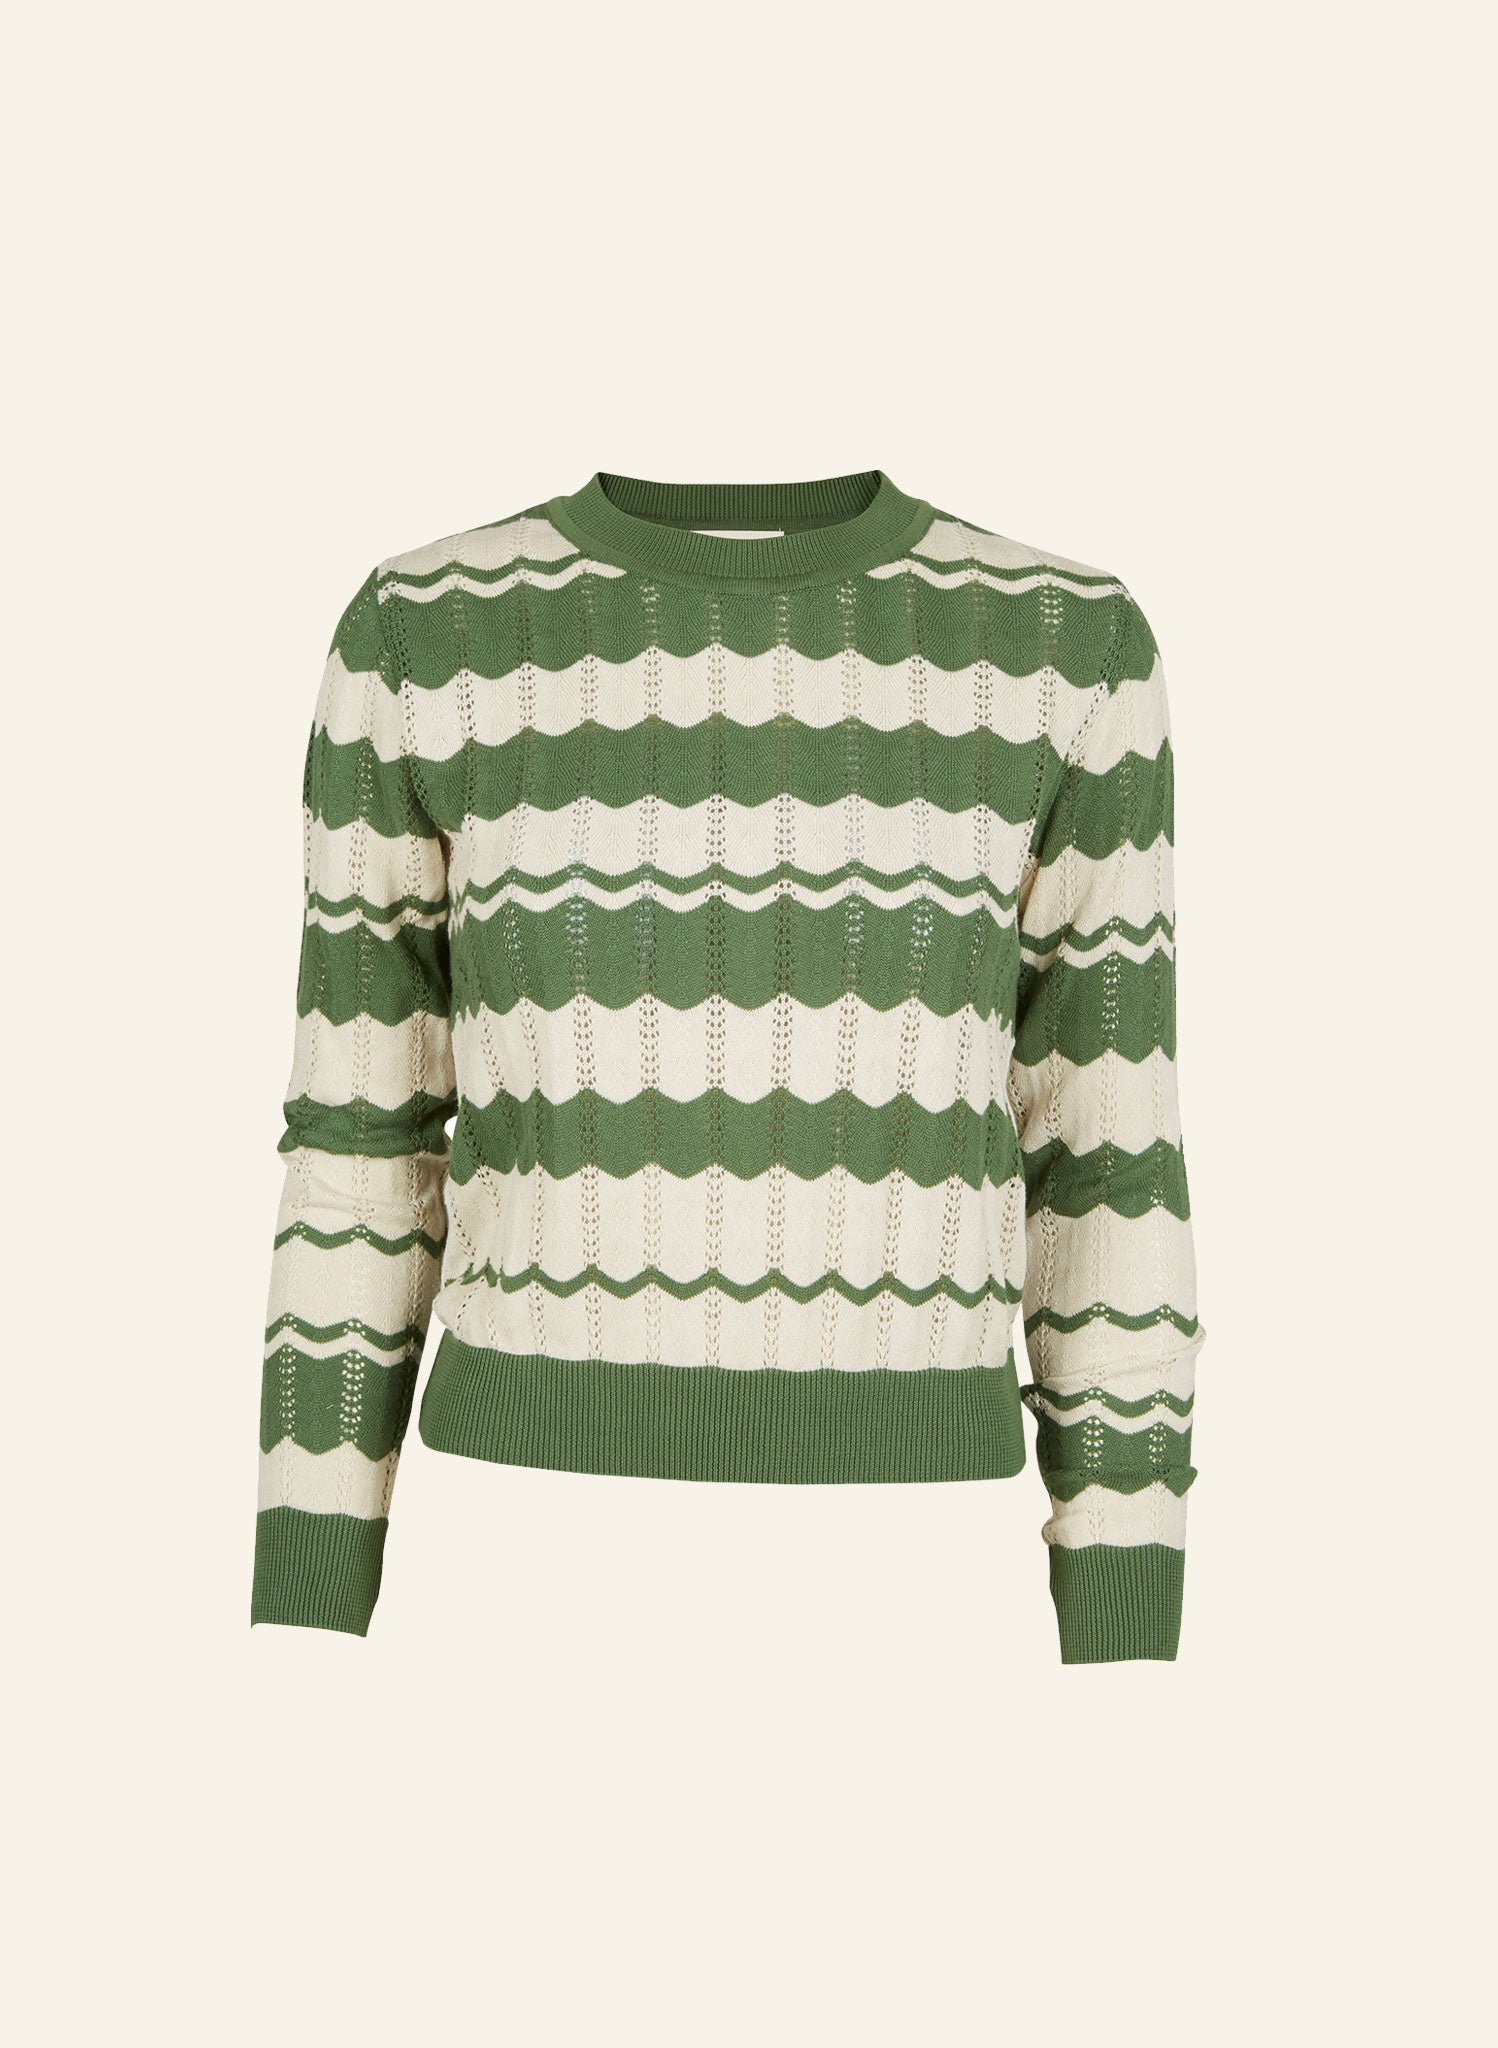 Clara - Green Zigzag Knitted Top - Organic Cotton